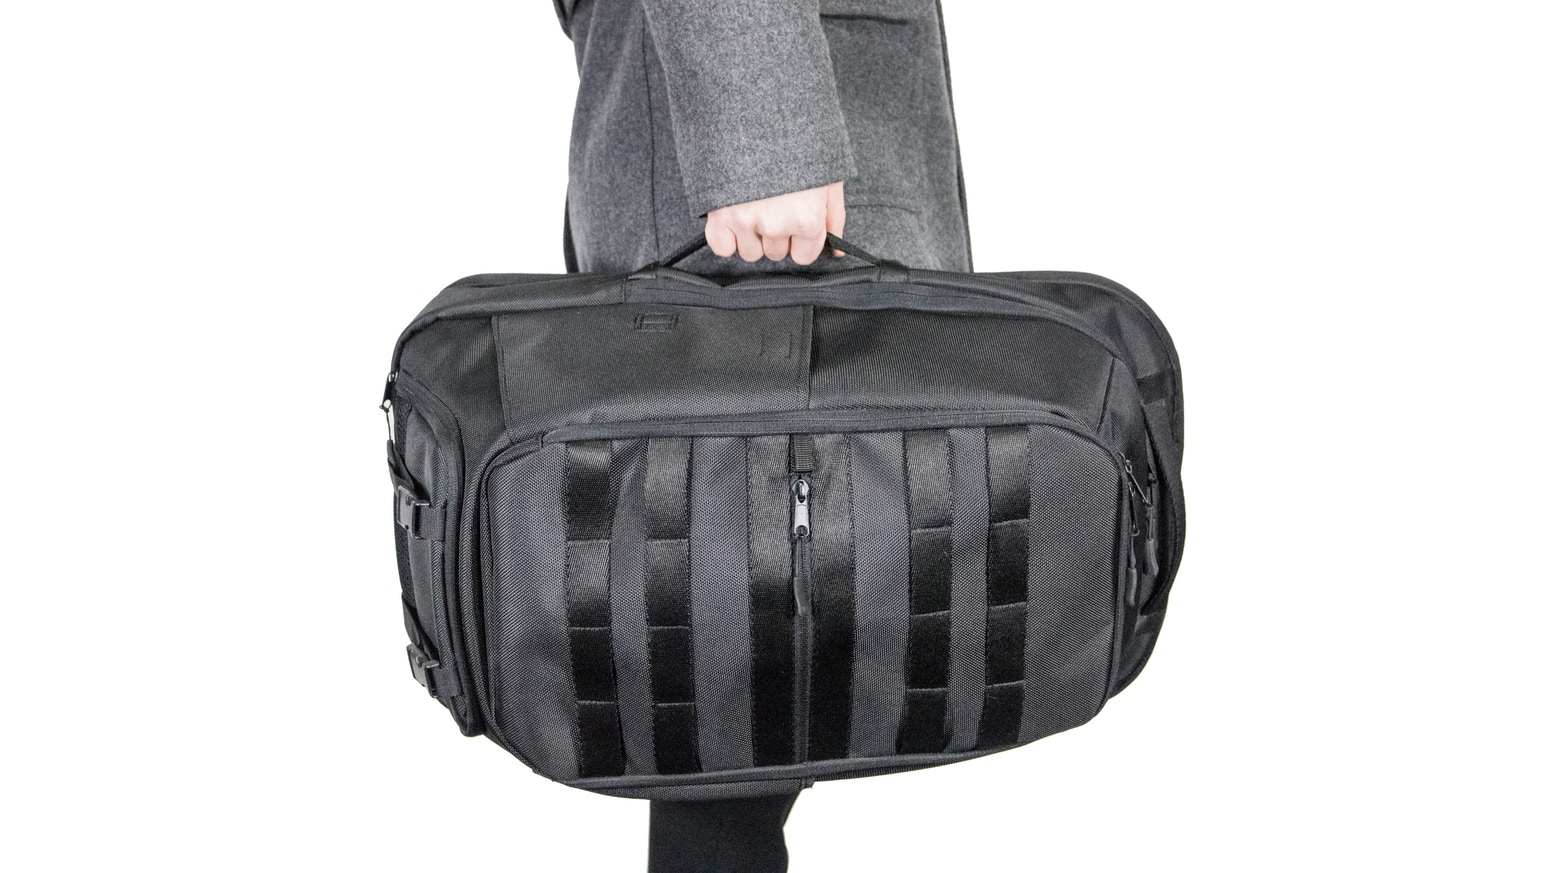 Bagram Pack: 3-bags-in-1 backpack for Office / Gym / Travel by